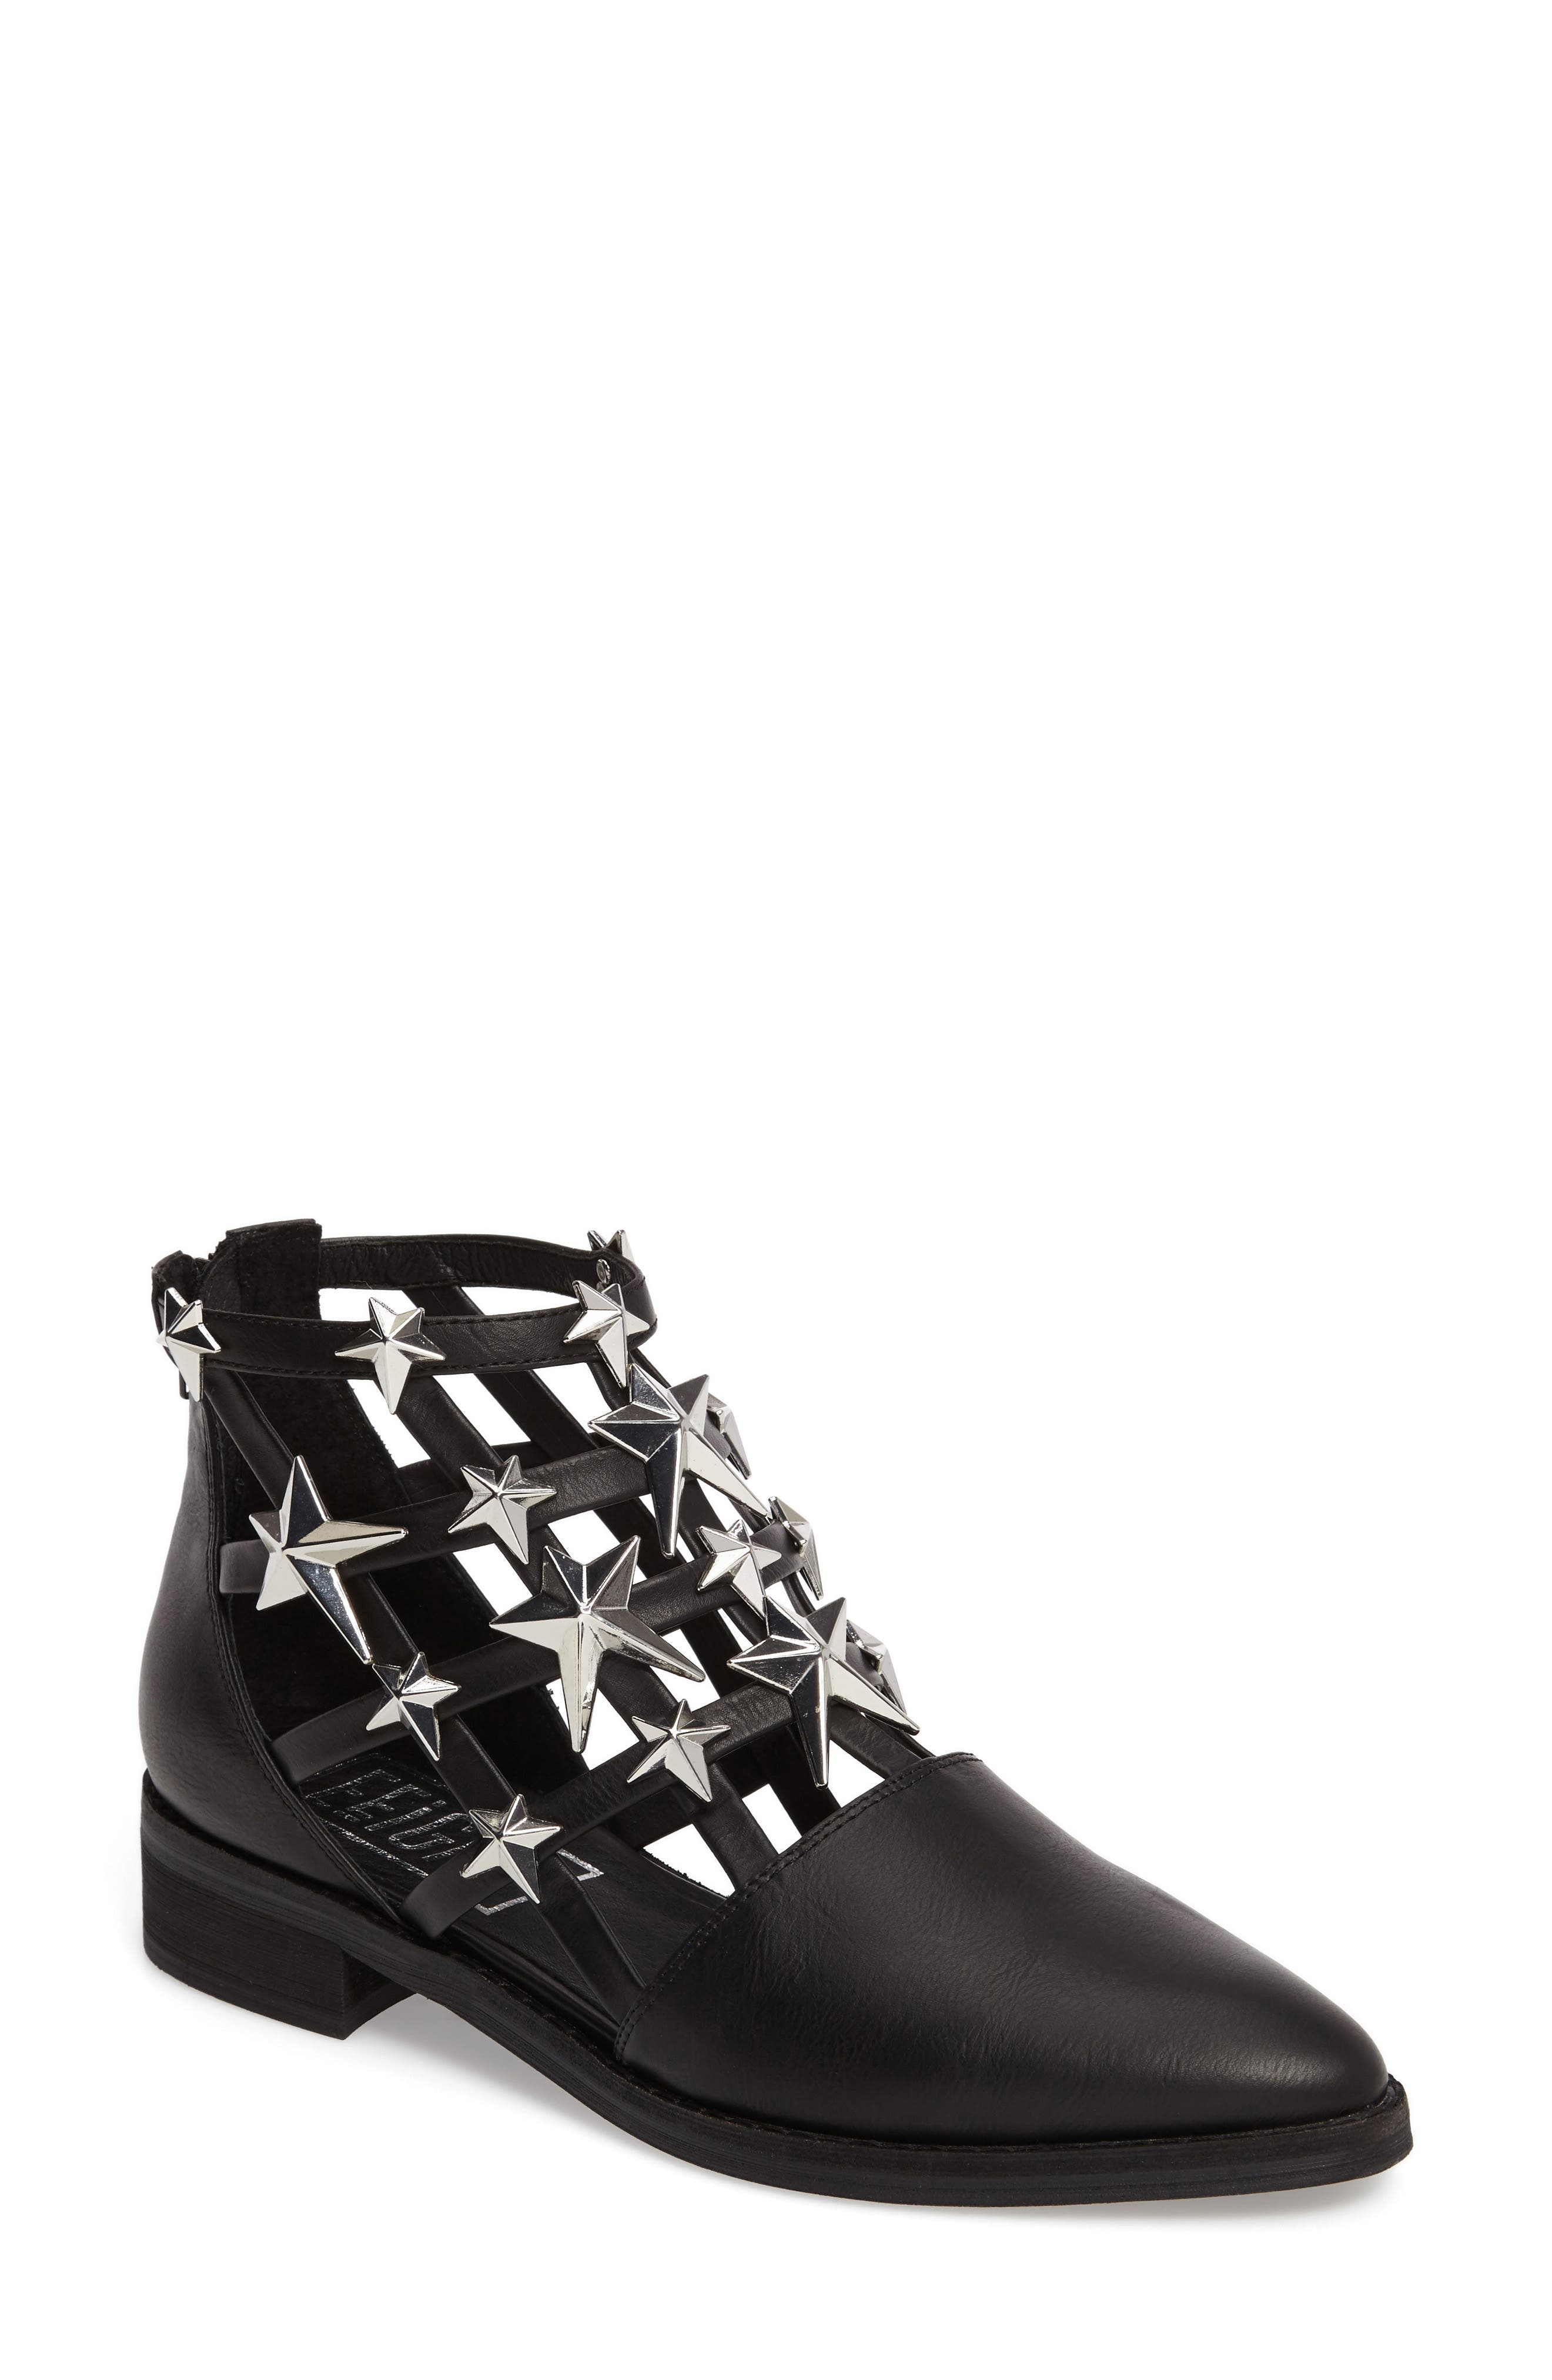 Nelly Cutout Bootie,                         Main,                         color,